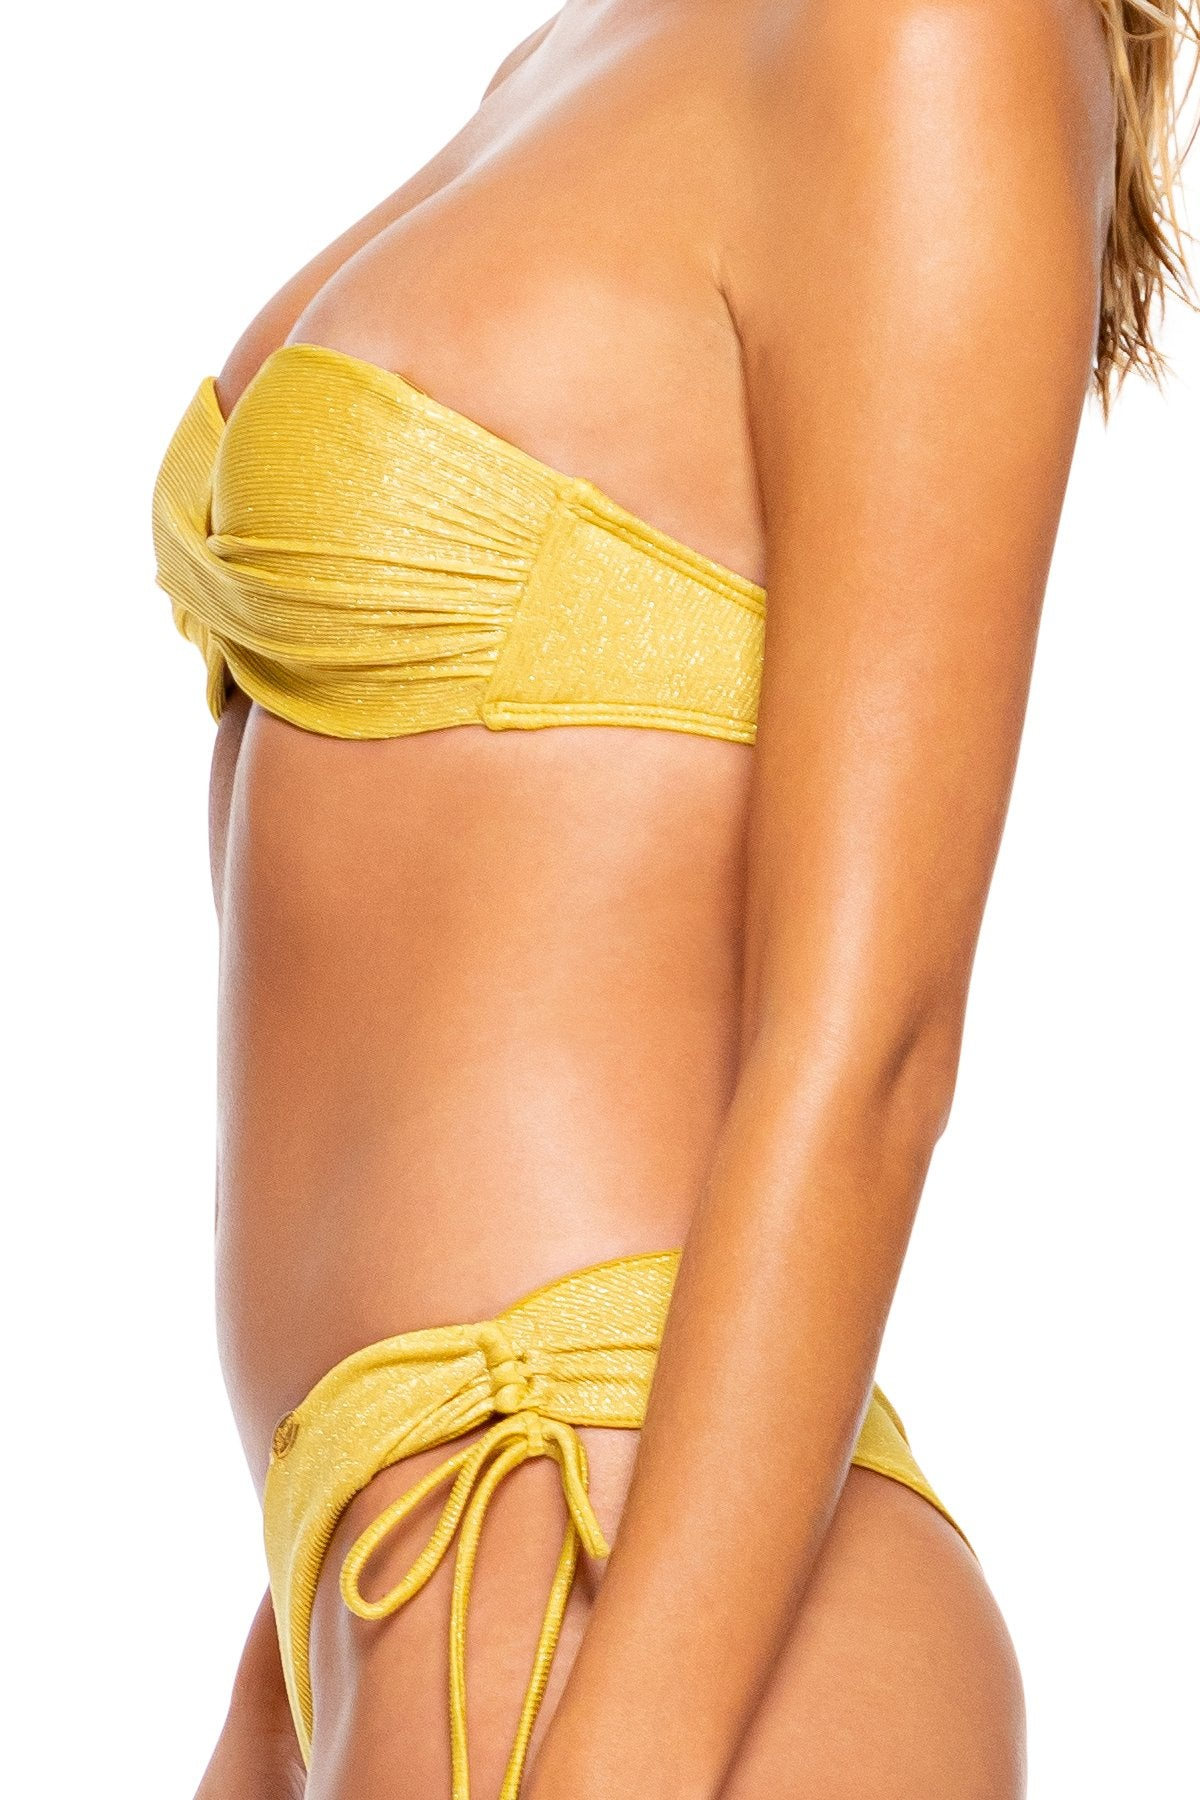 LULI DIVA - Underwire Push Up Bandeau Top & Drawstring Side  Bottom • Sunset Gold Runway